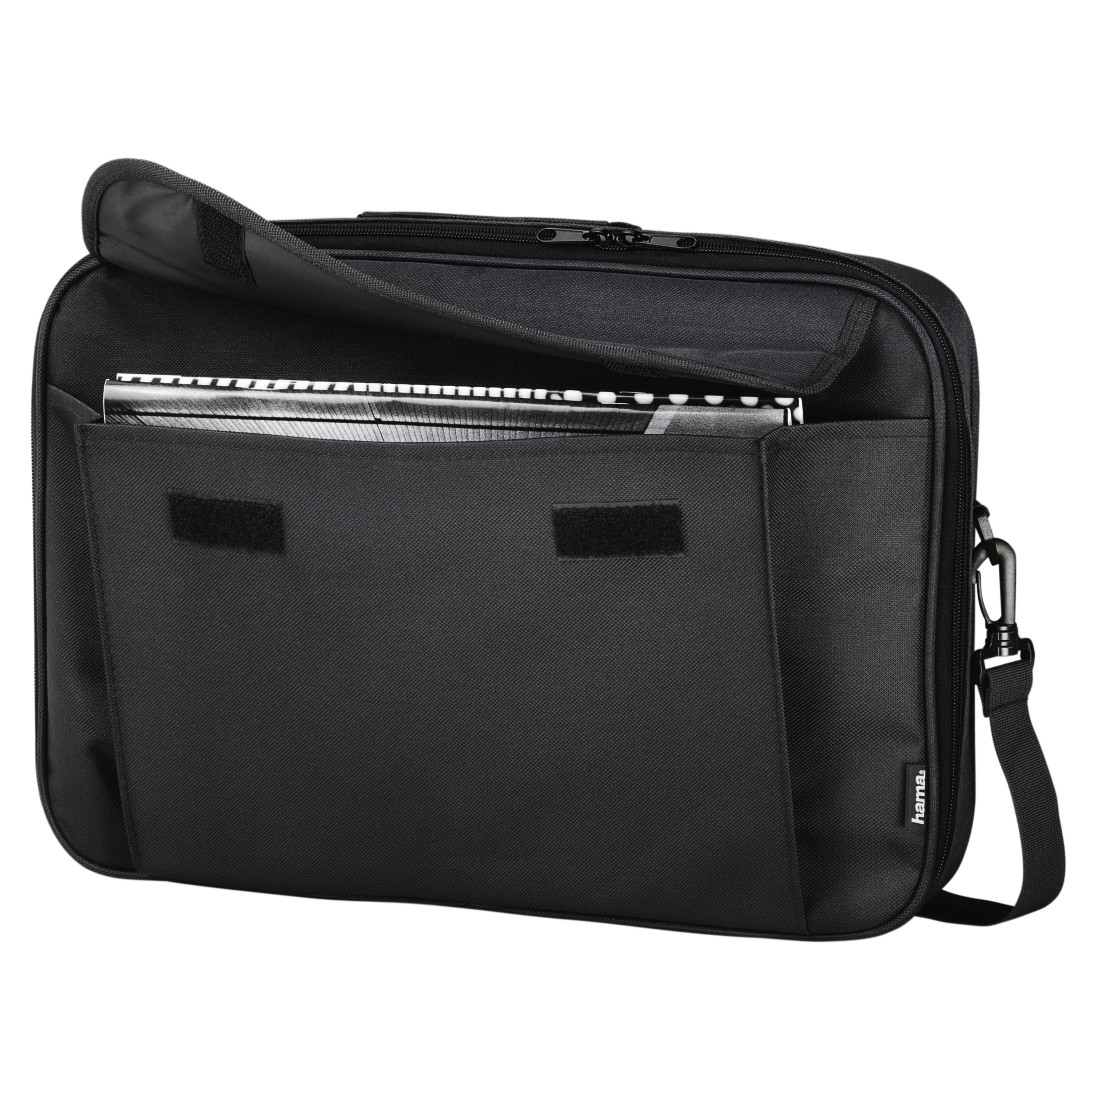 abx2 High-Res Image 2 - Hama, Sportsline Montego Public Notebook Bag, up to 40 cm (15.6), black